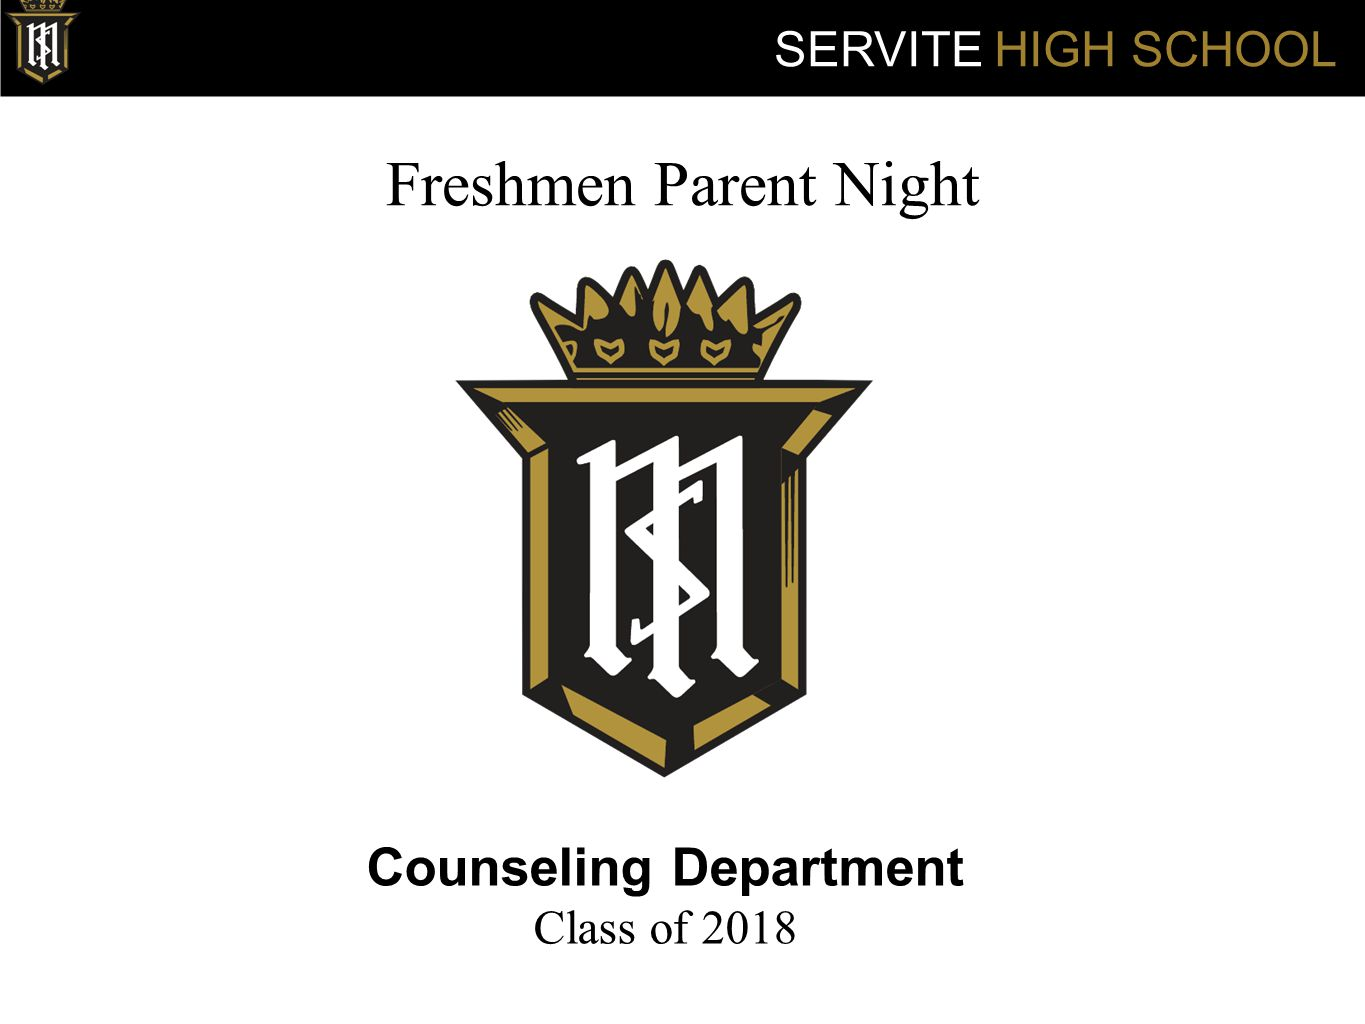 Freshmen Parent Night Counseling Department Class of 2018 SERVITE HIGH SCHOOL